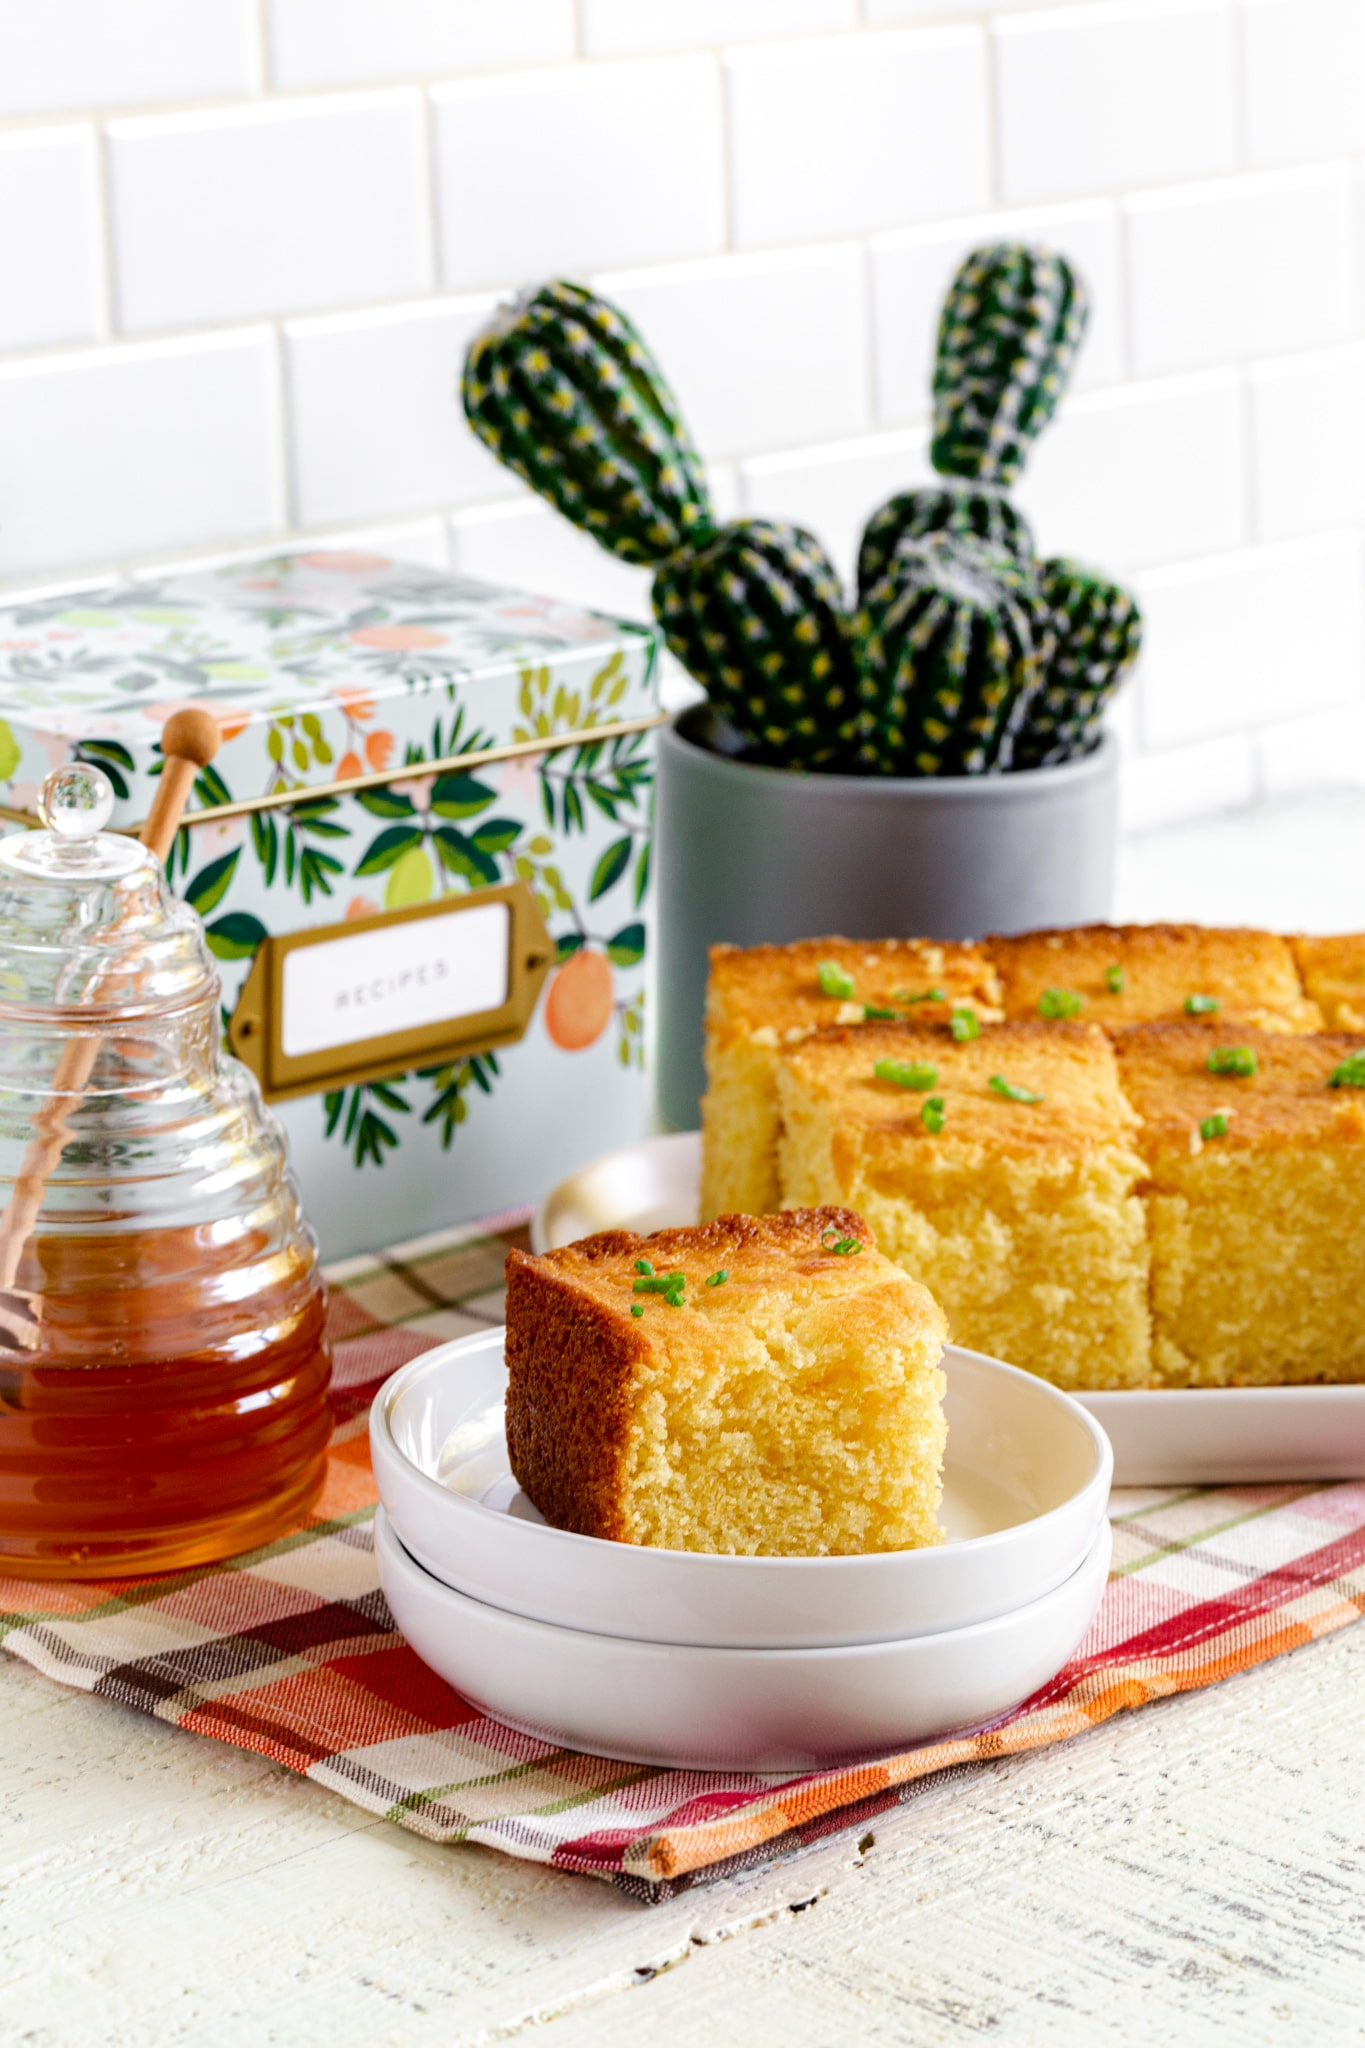 Serving of Jiffy cornbread on a white plate next to a platter of freshly-baked cornbread squares.